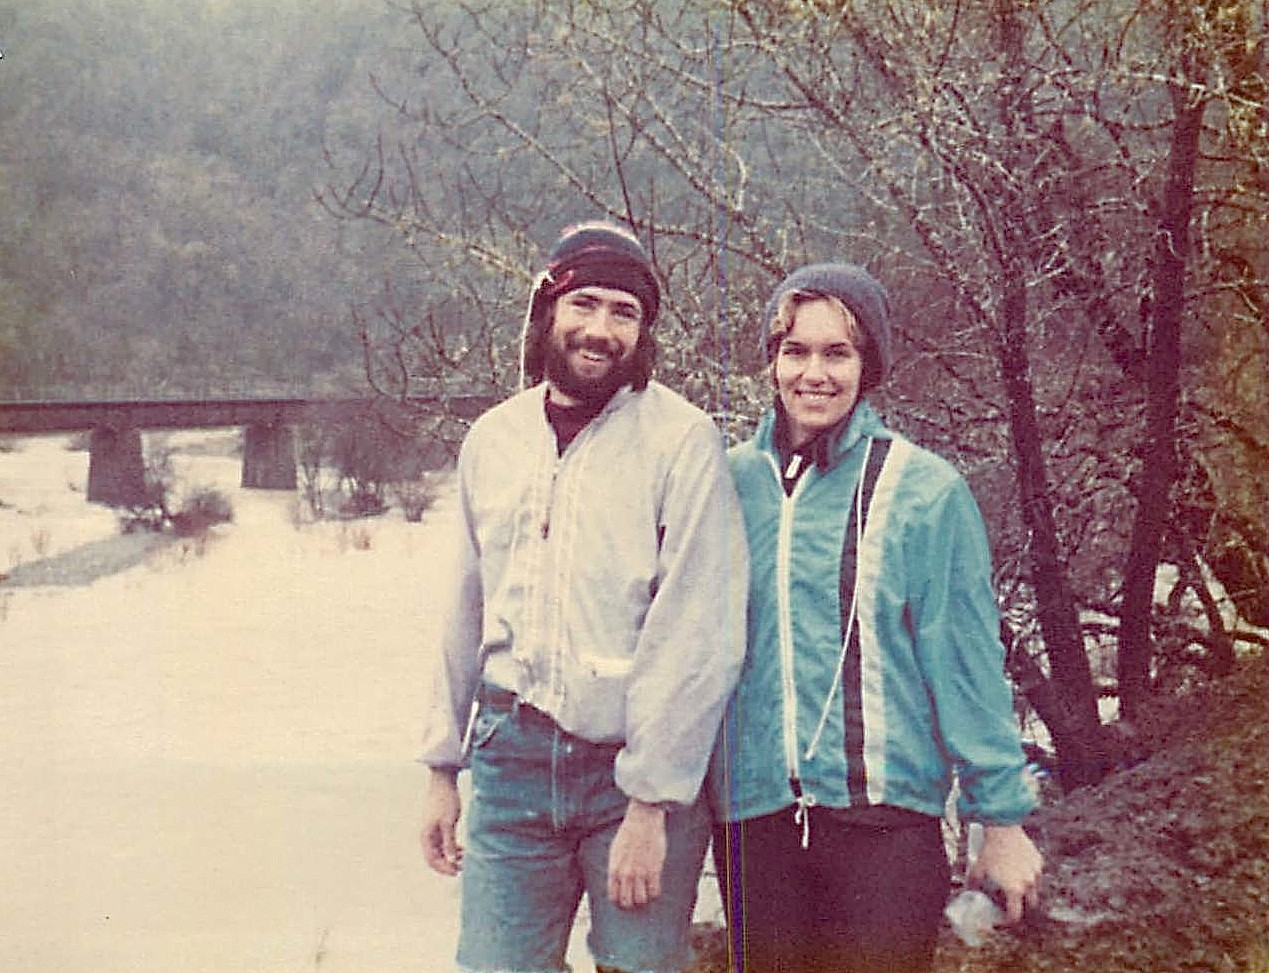 John Wagner & Lorraine Gudas, Eel River rafting, March 1980